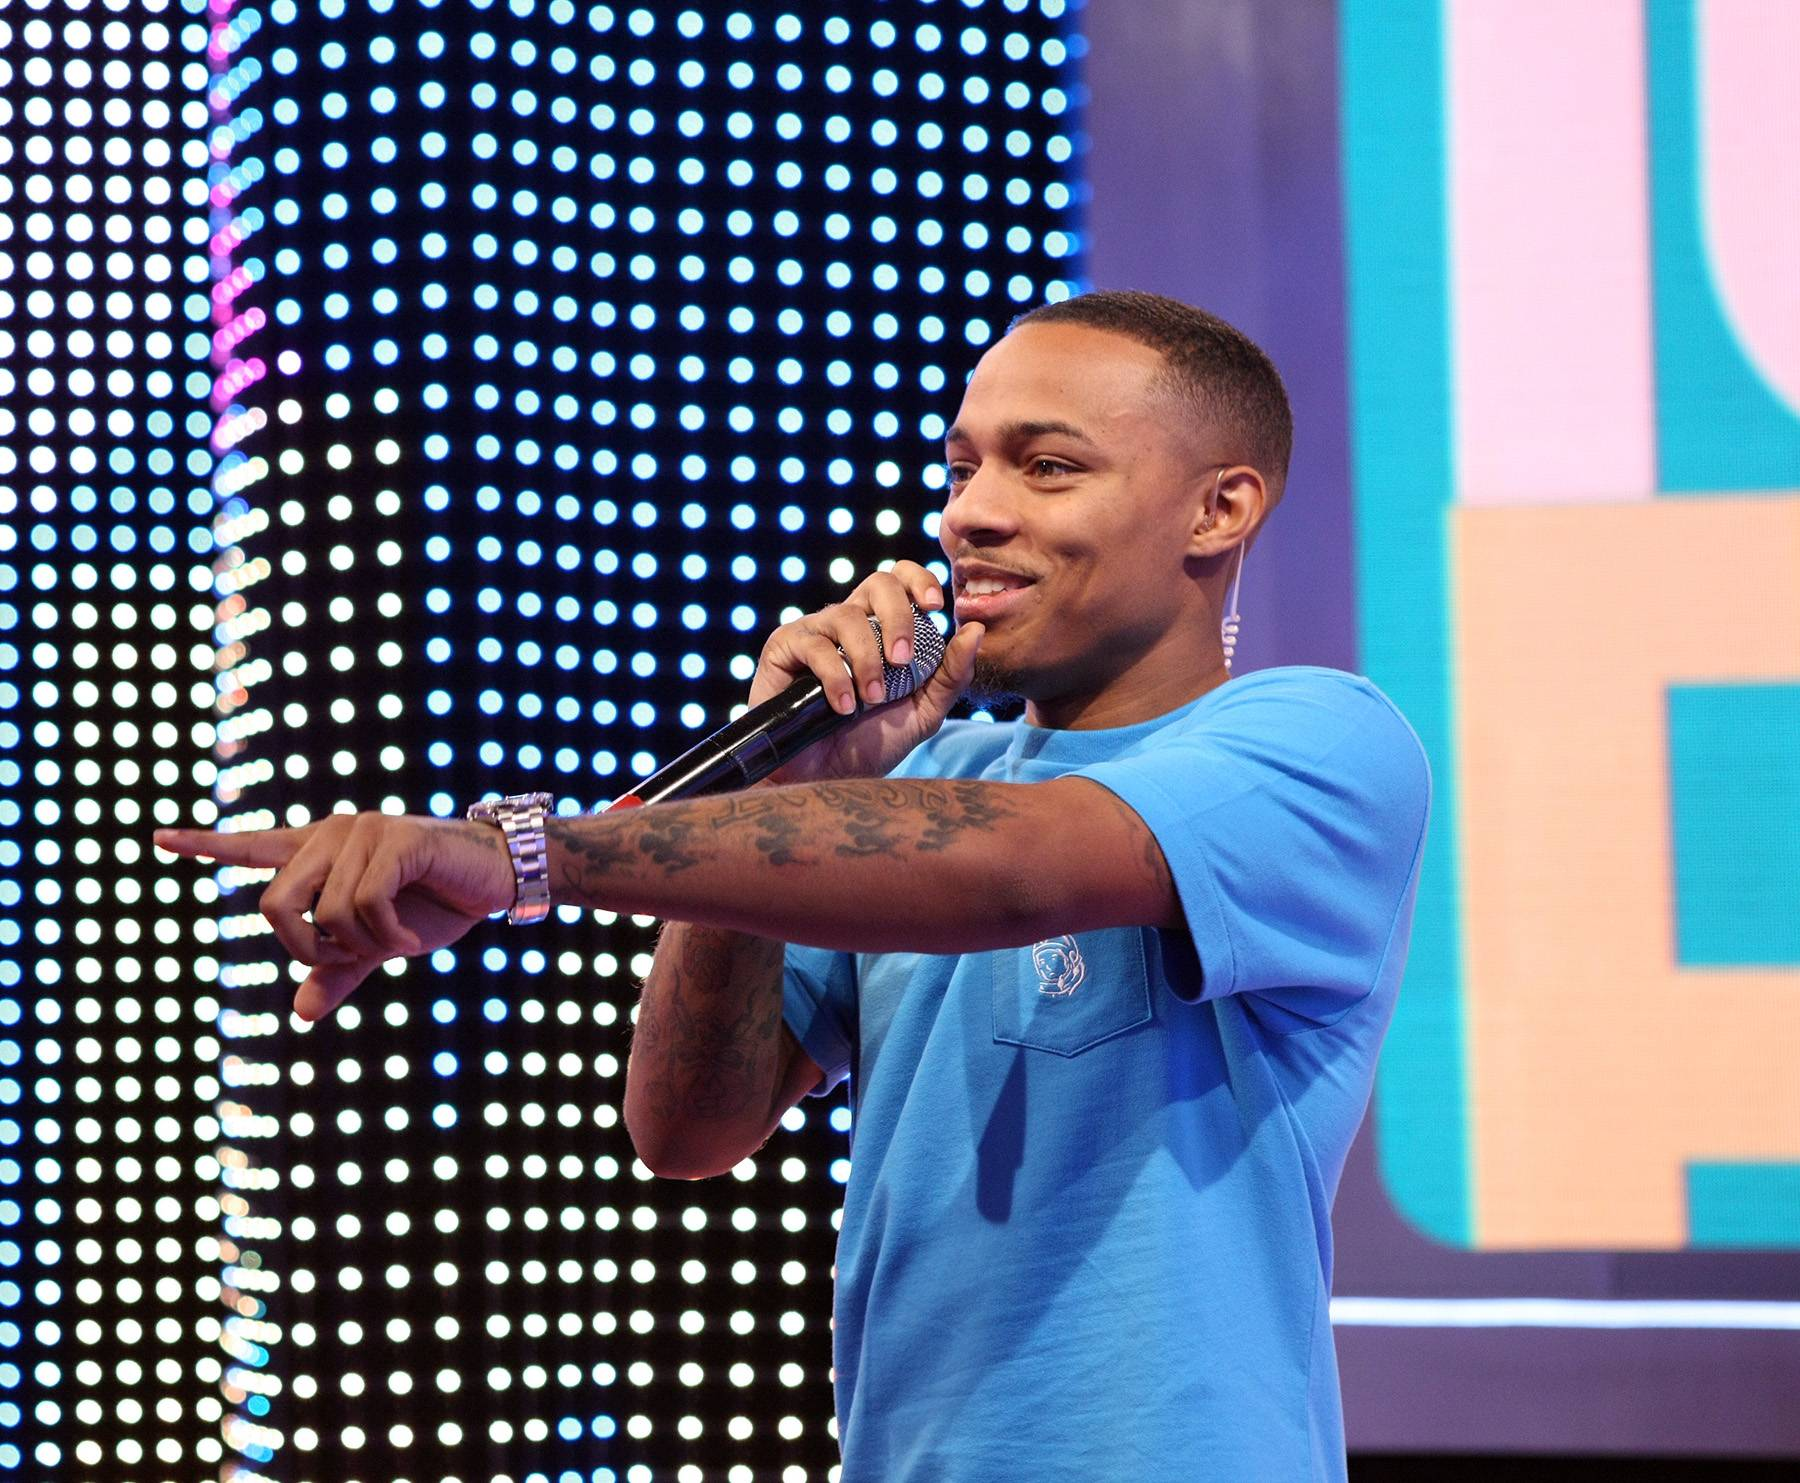 Ayyy - Bow Wow calling someone out in the livest audience. (Photo: Bennett Raglin/BET/Getty Images for BET)